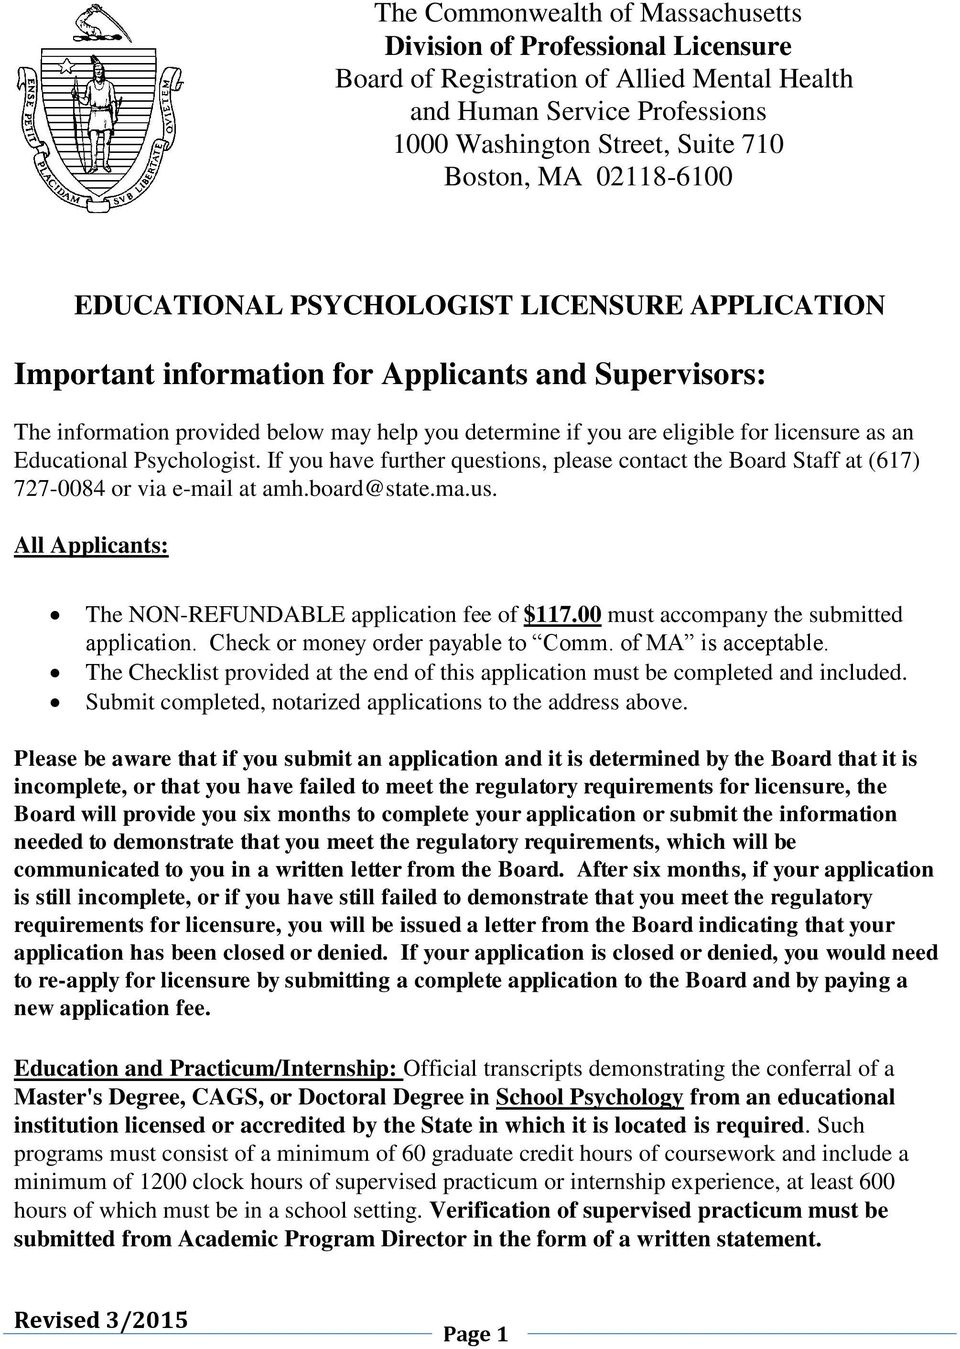 as an Educational Psychologist. If you have further questions, please contact the Board Staff at (617) 727-0084 or via e-mail at amh.board@state.ma.us.